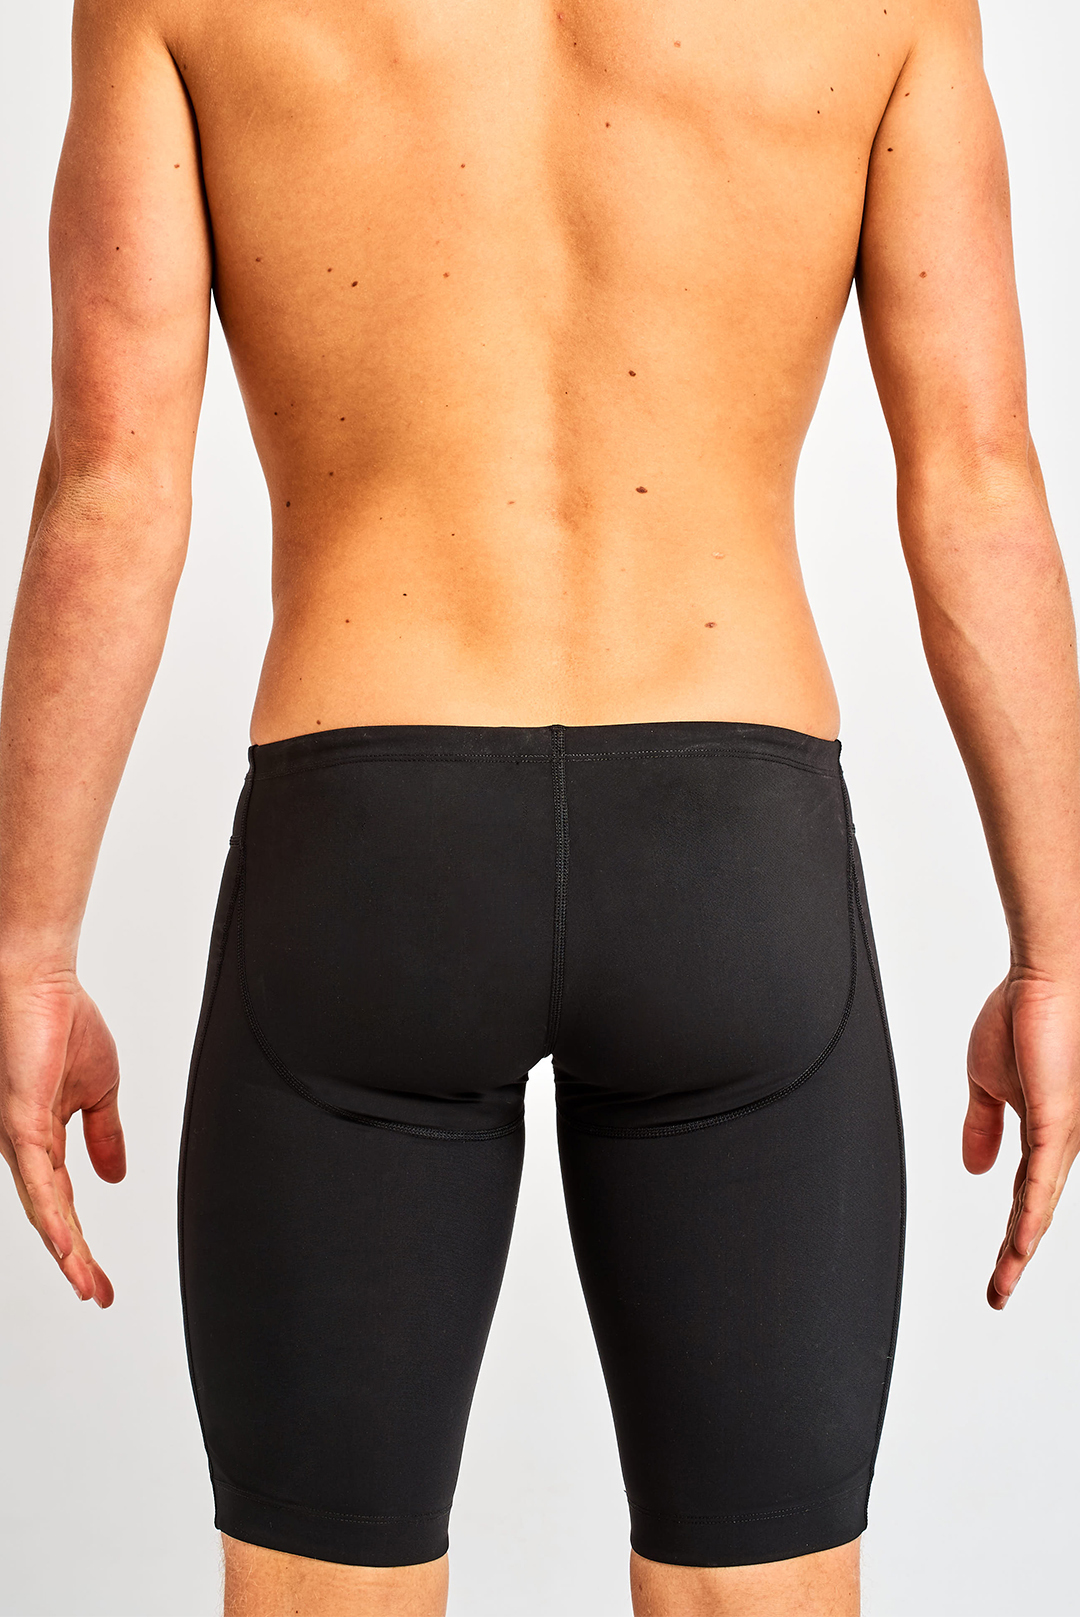 Shredskin Pro Male - Black